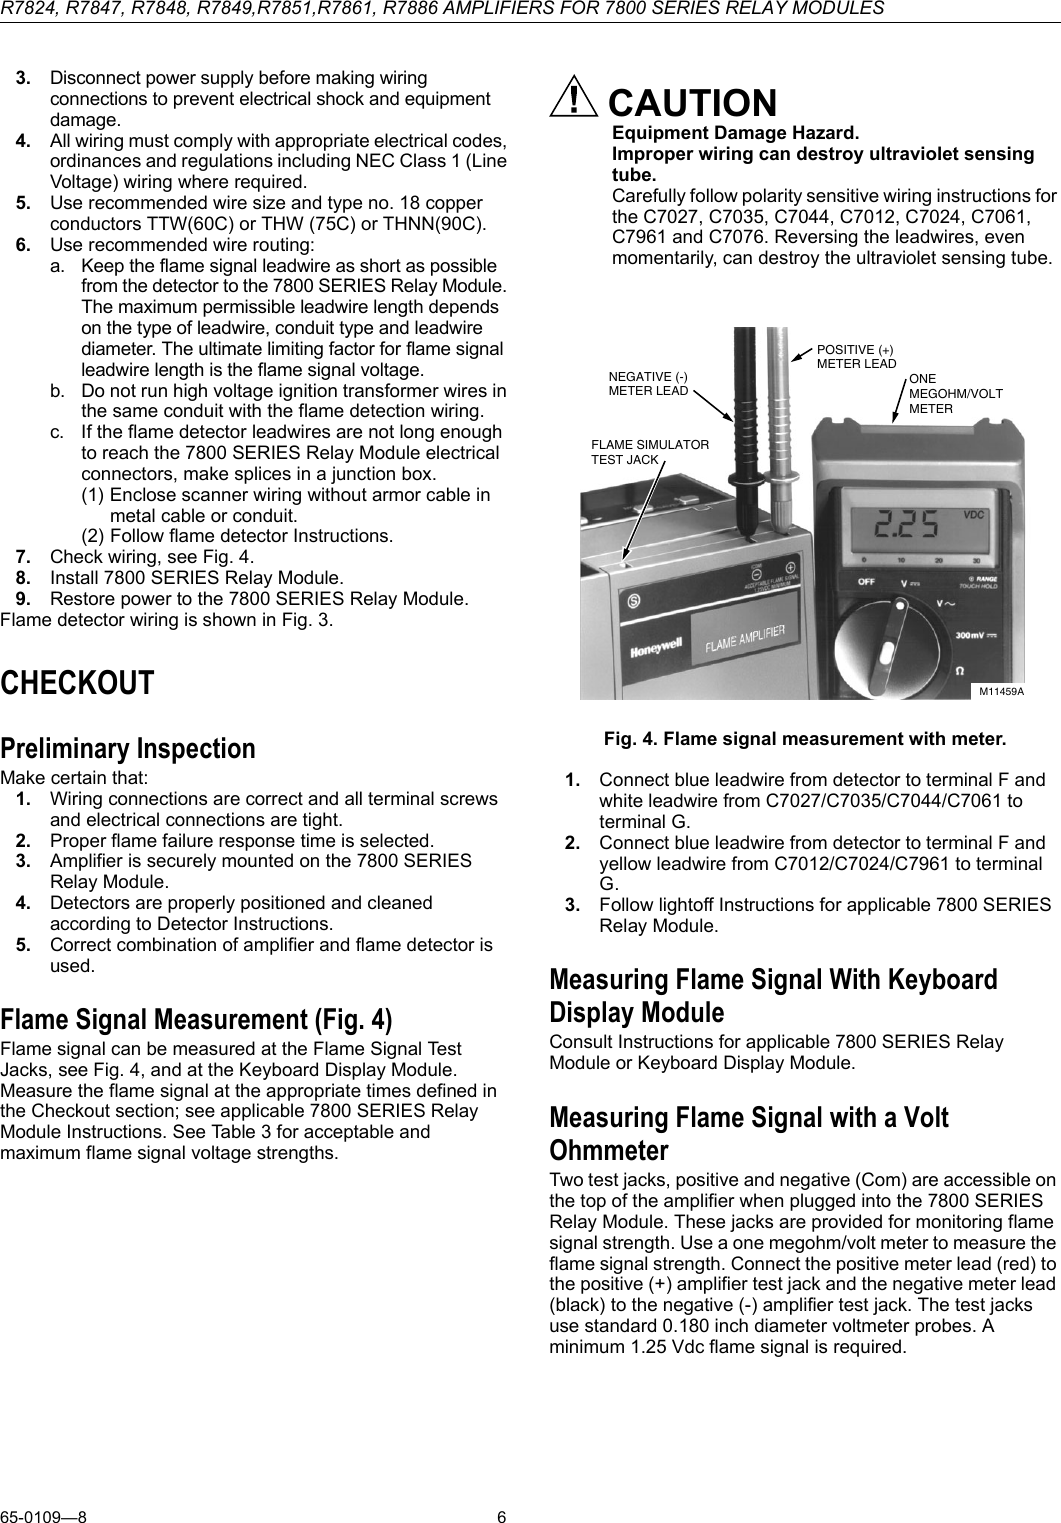 Honeywell Thermostat R Users Manual 65 R